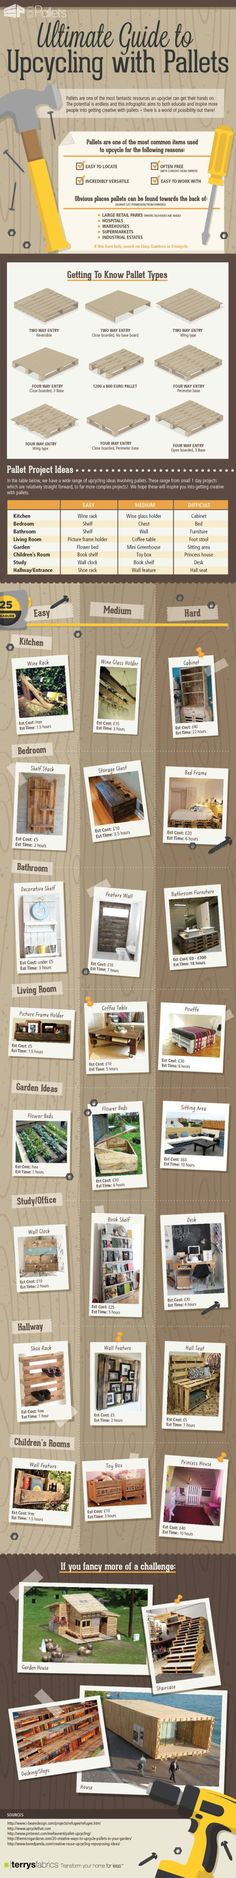 Ultimate Guide To Upcycling Pallets In this Ultimate Guide To Upcycling Pallets, you'll discover that pallets are excellent material to upcycle into many projects. They can be as simple as a shelf, to an entire shed or even a home! Plus, they're also readily available all around us. We at www.1001pallets.com think our website proves that much for sure! Ultimate... http://www.www.www.1001pallets.com2013/11/ultimate-guide-to-upcycling-with-pallets